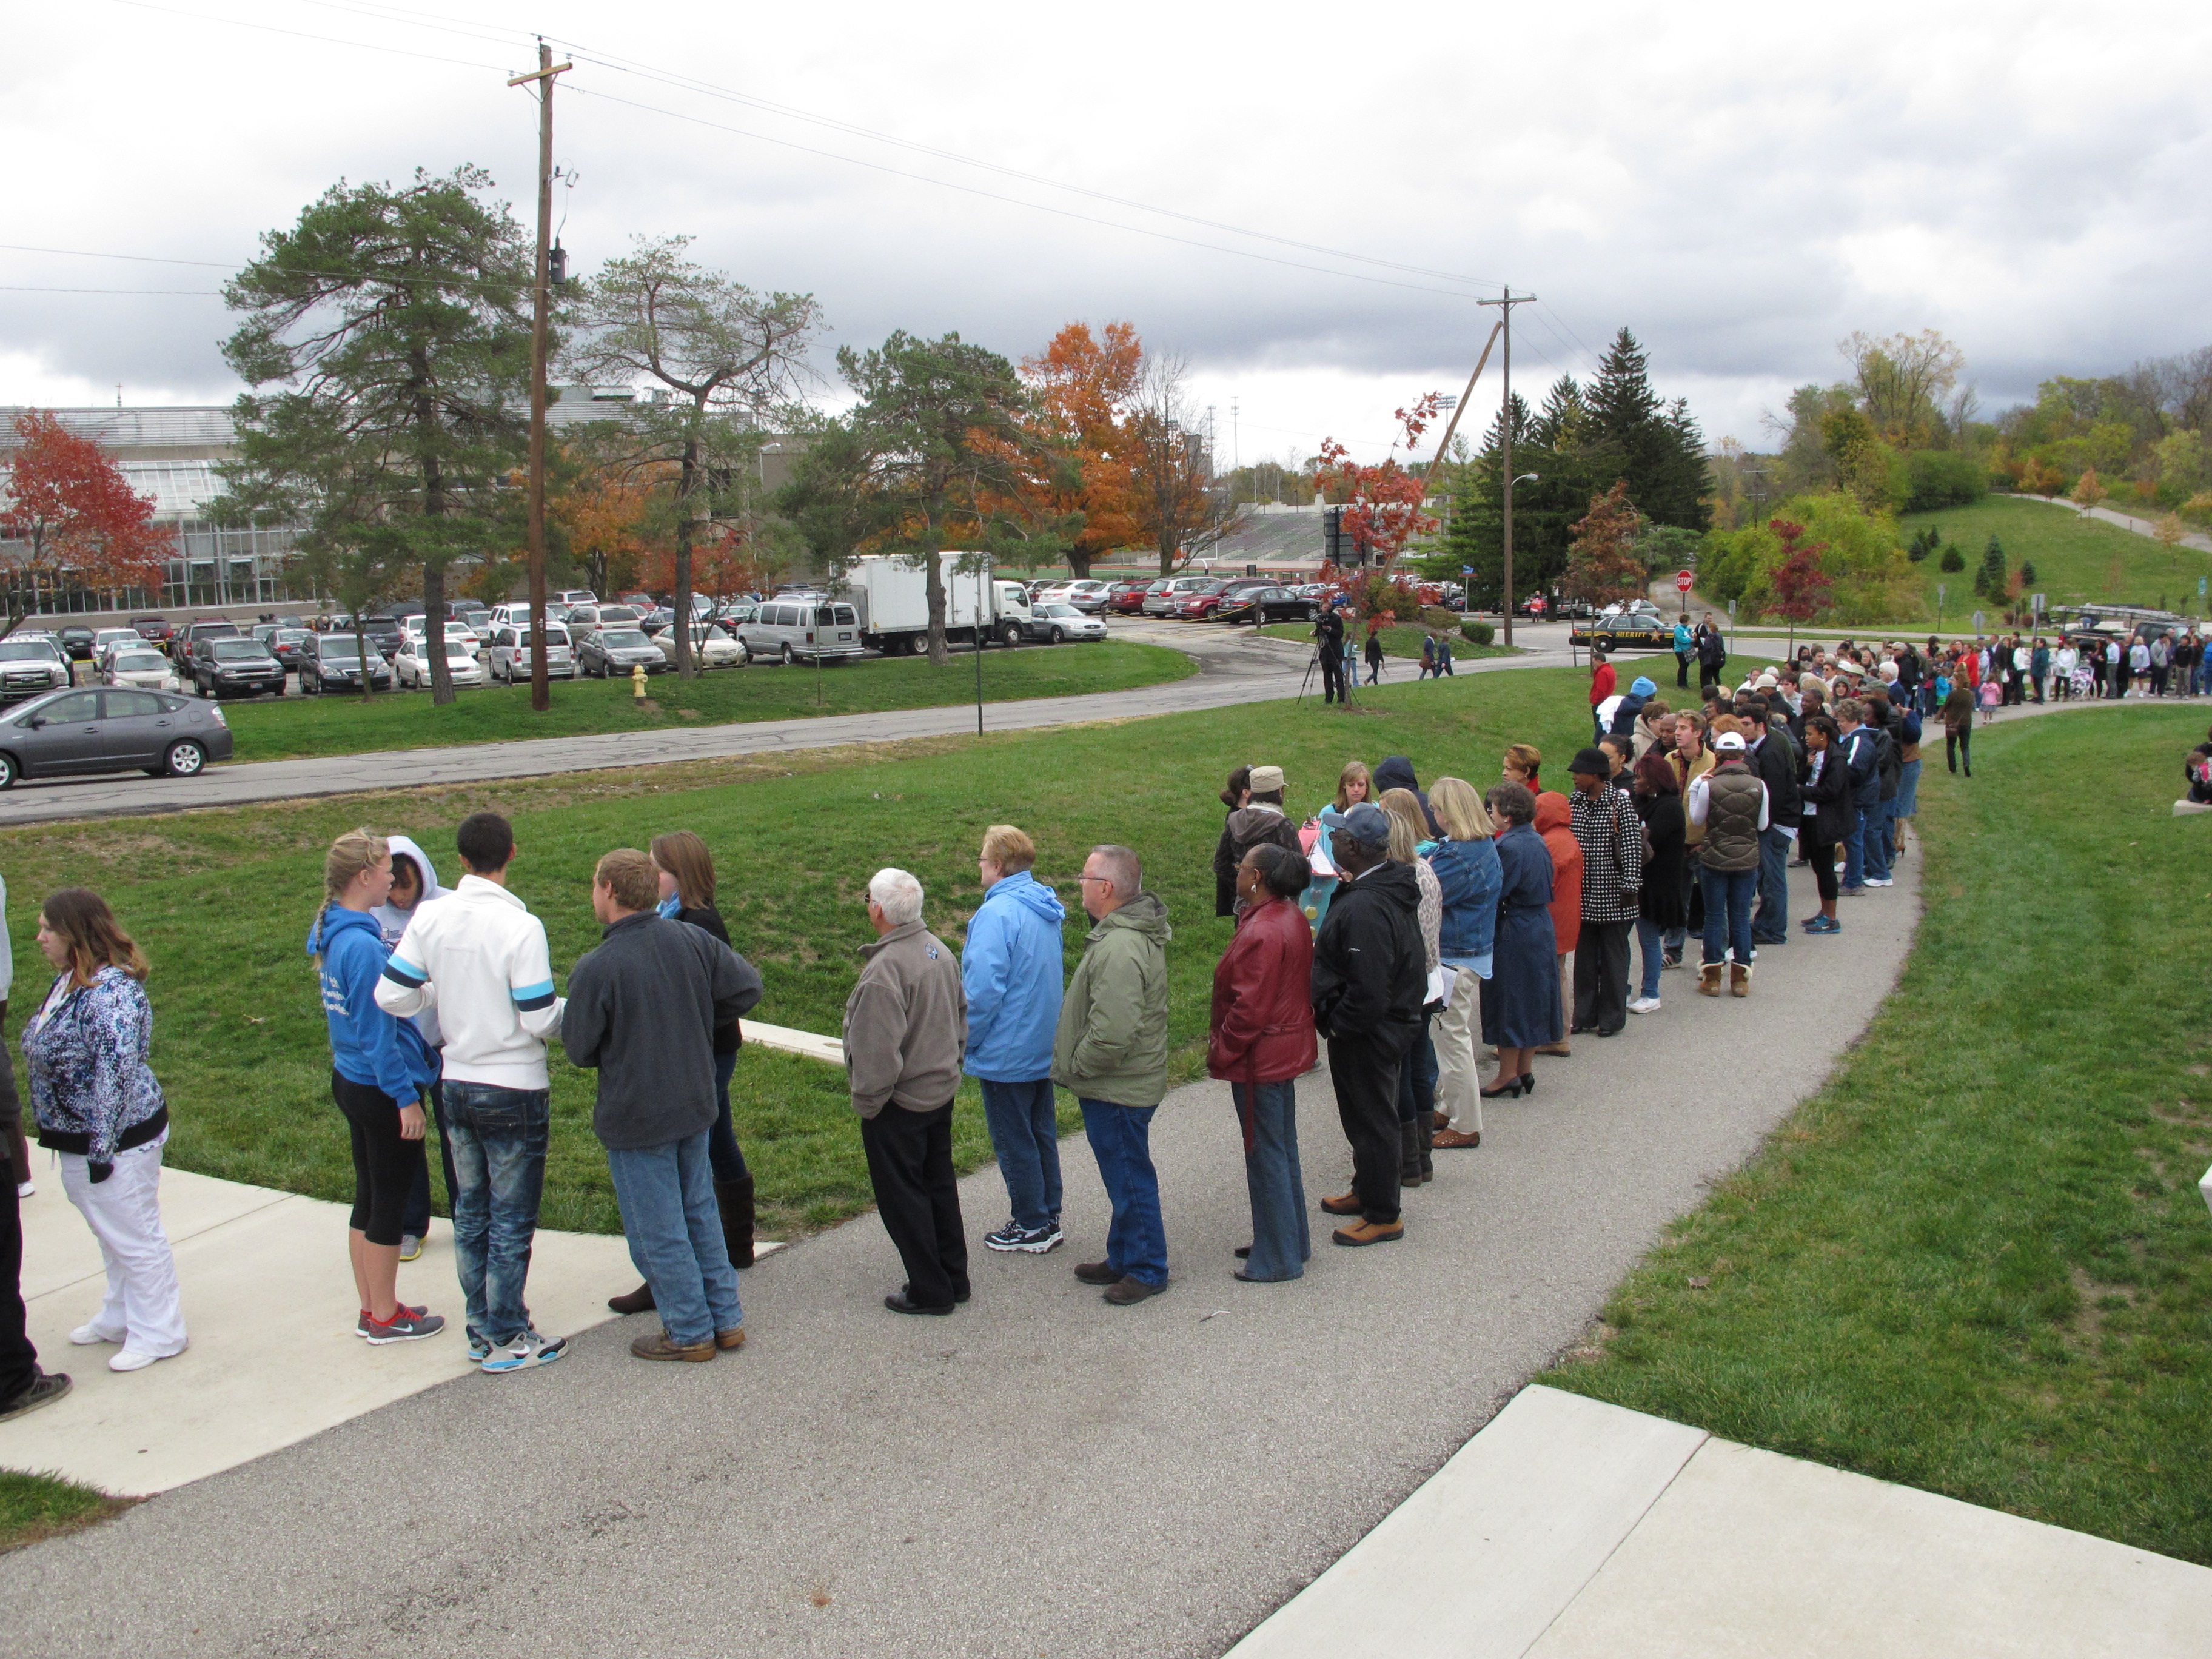 Michelle Obama pushes early voting in Ohio visit - The Blade